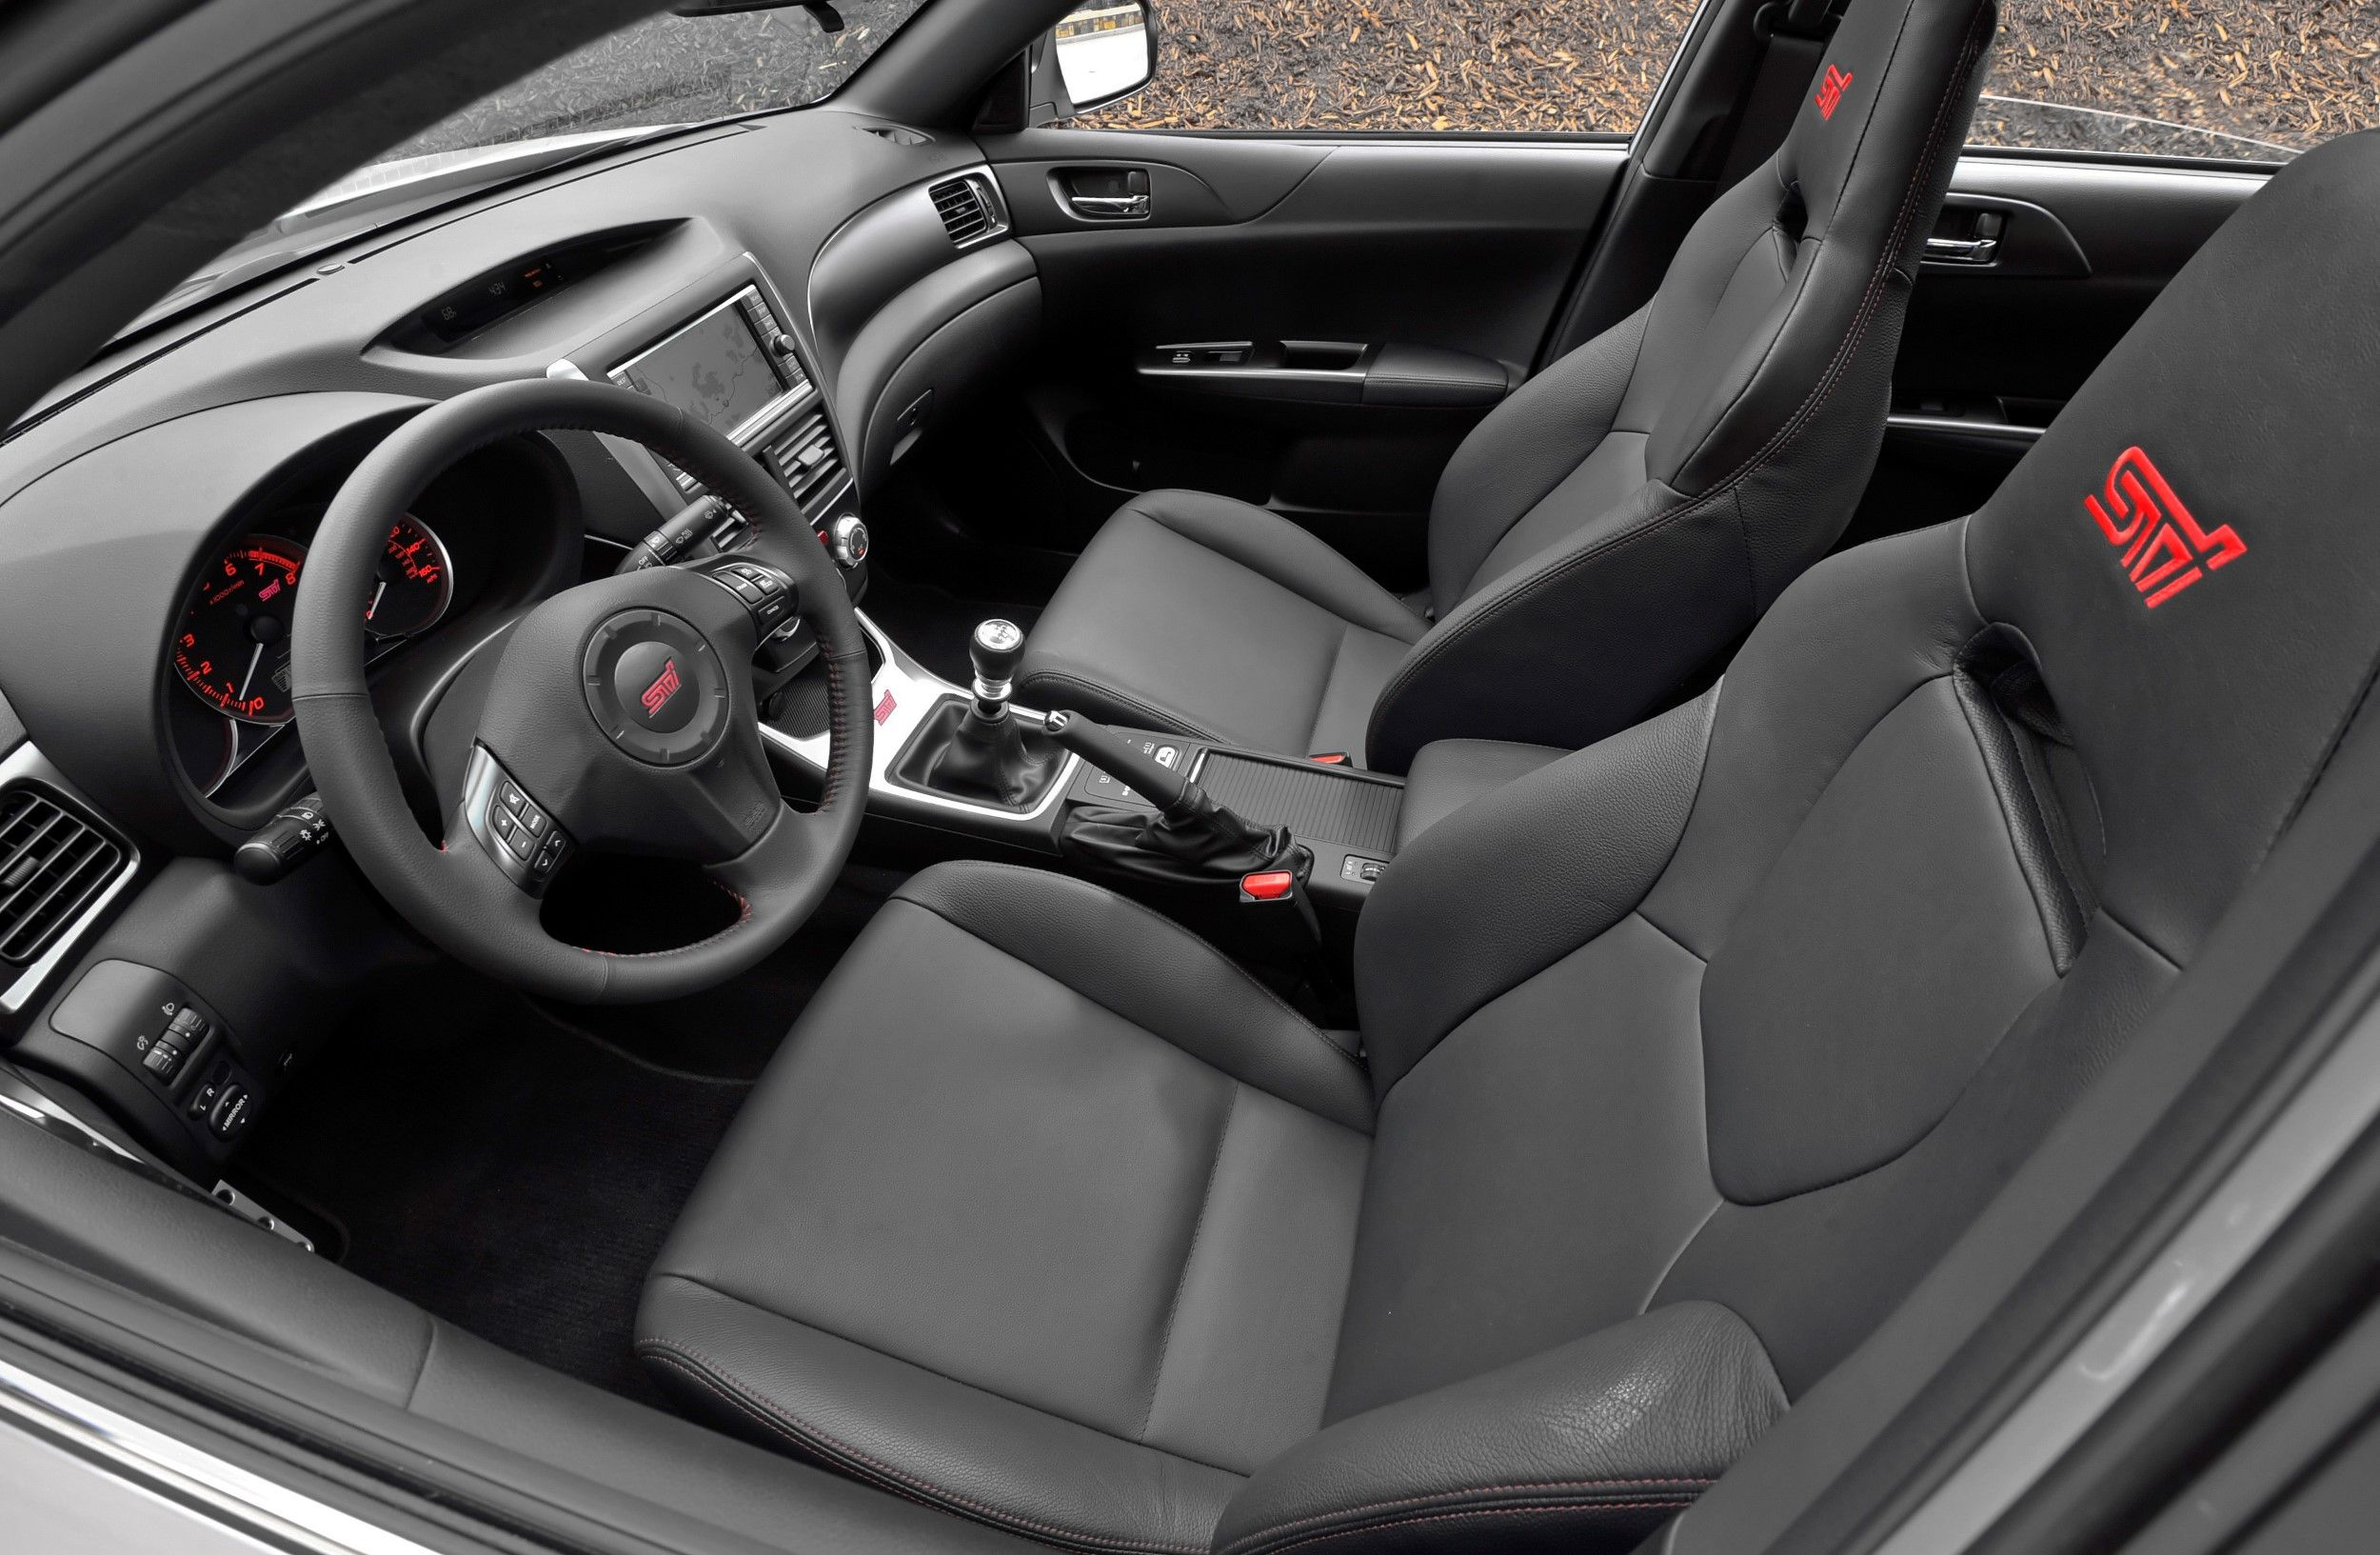 subaru wrx hatchback interior. 2011 subaru impreza wrx sti interior photo 3 cars pinterest and hatchback r